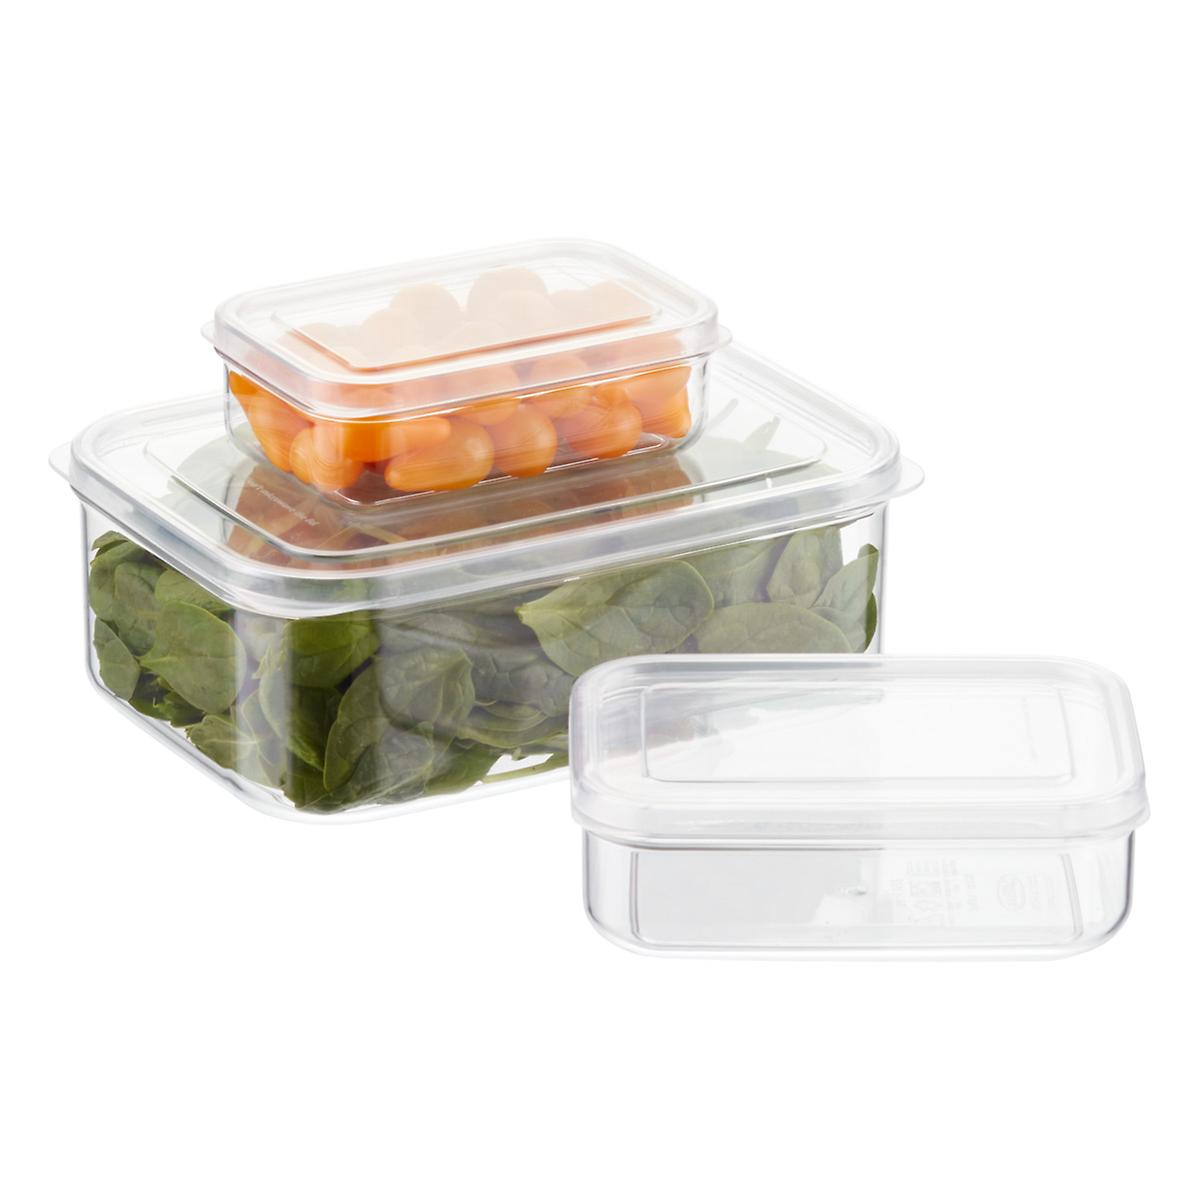 Crystal Clear Rectangular Food Storage ...